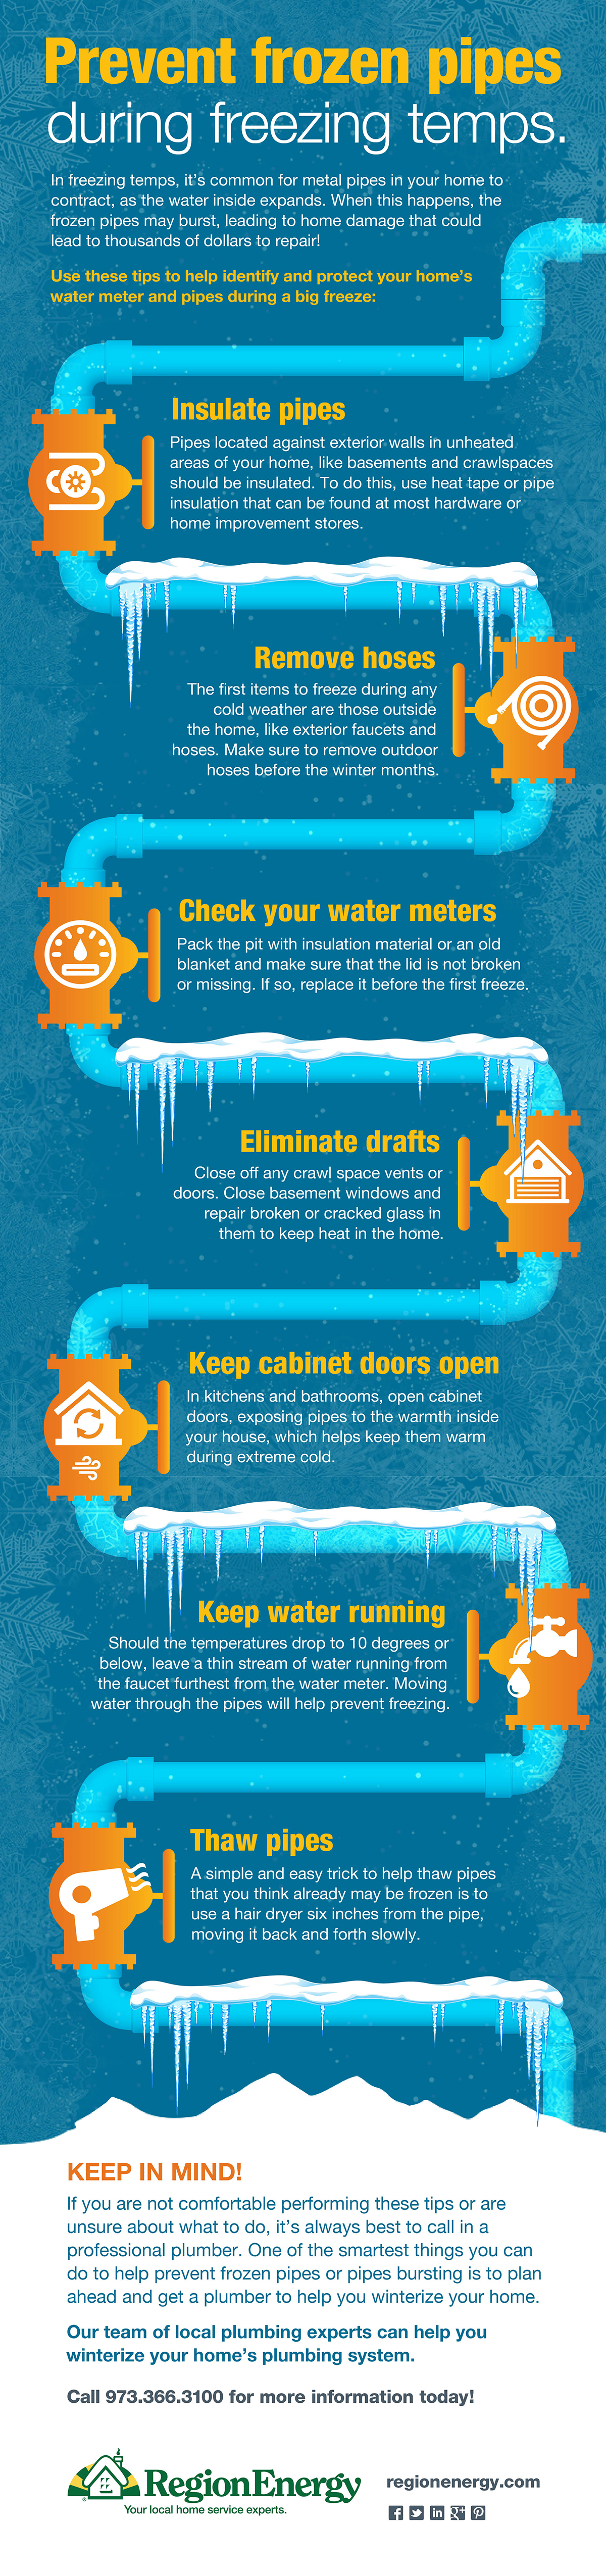 How to prevent frozen pipes during freezing temps